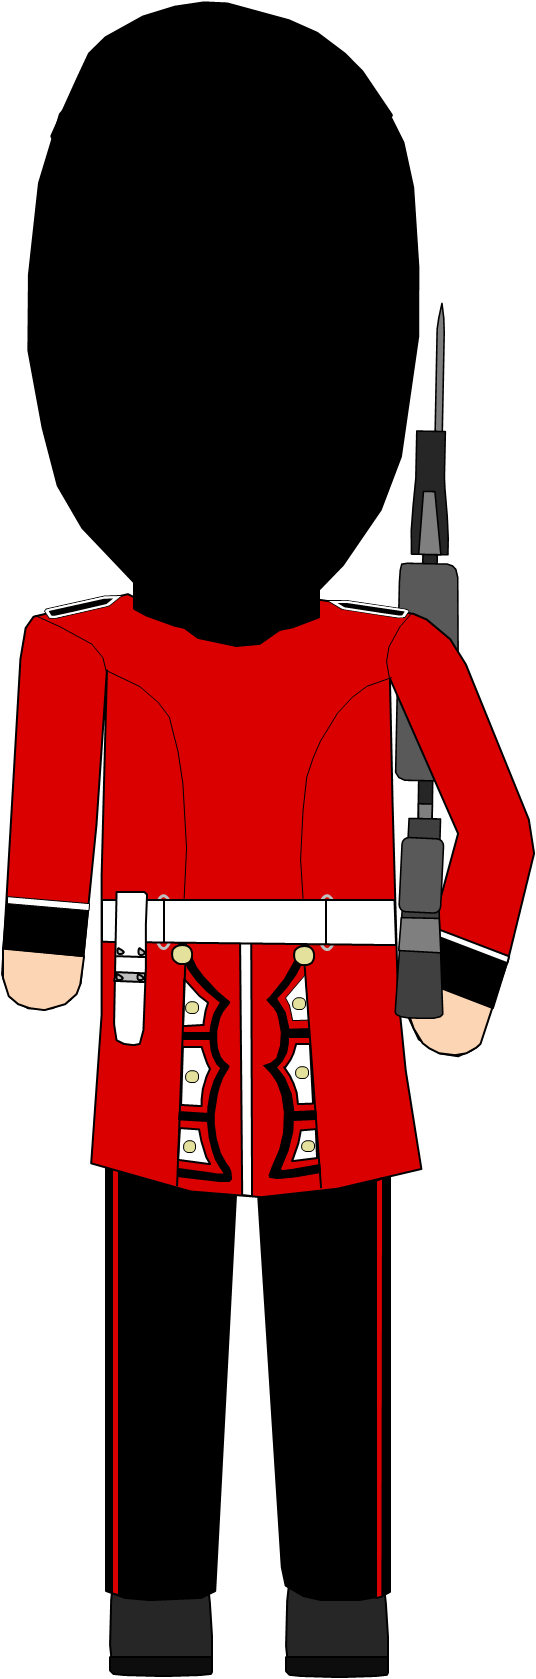 Royal queens guard achterkant. London clipart guards buckingham palace png free stock